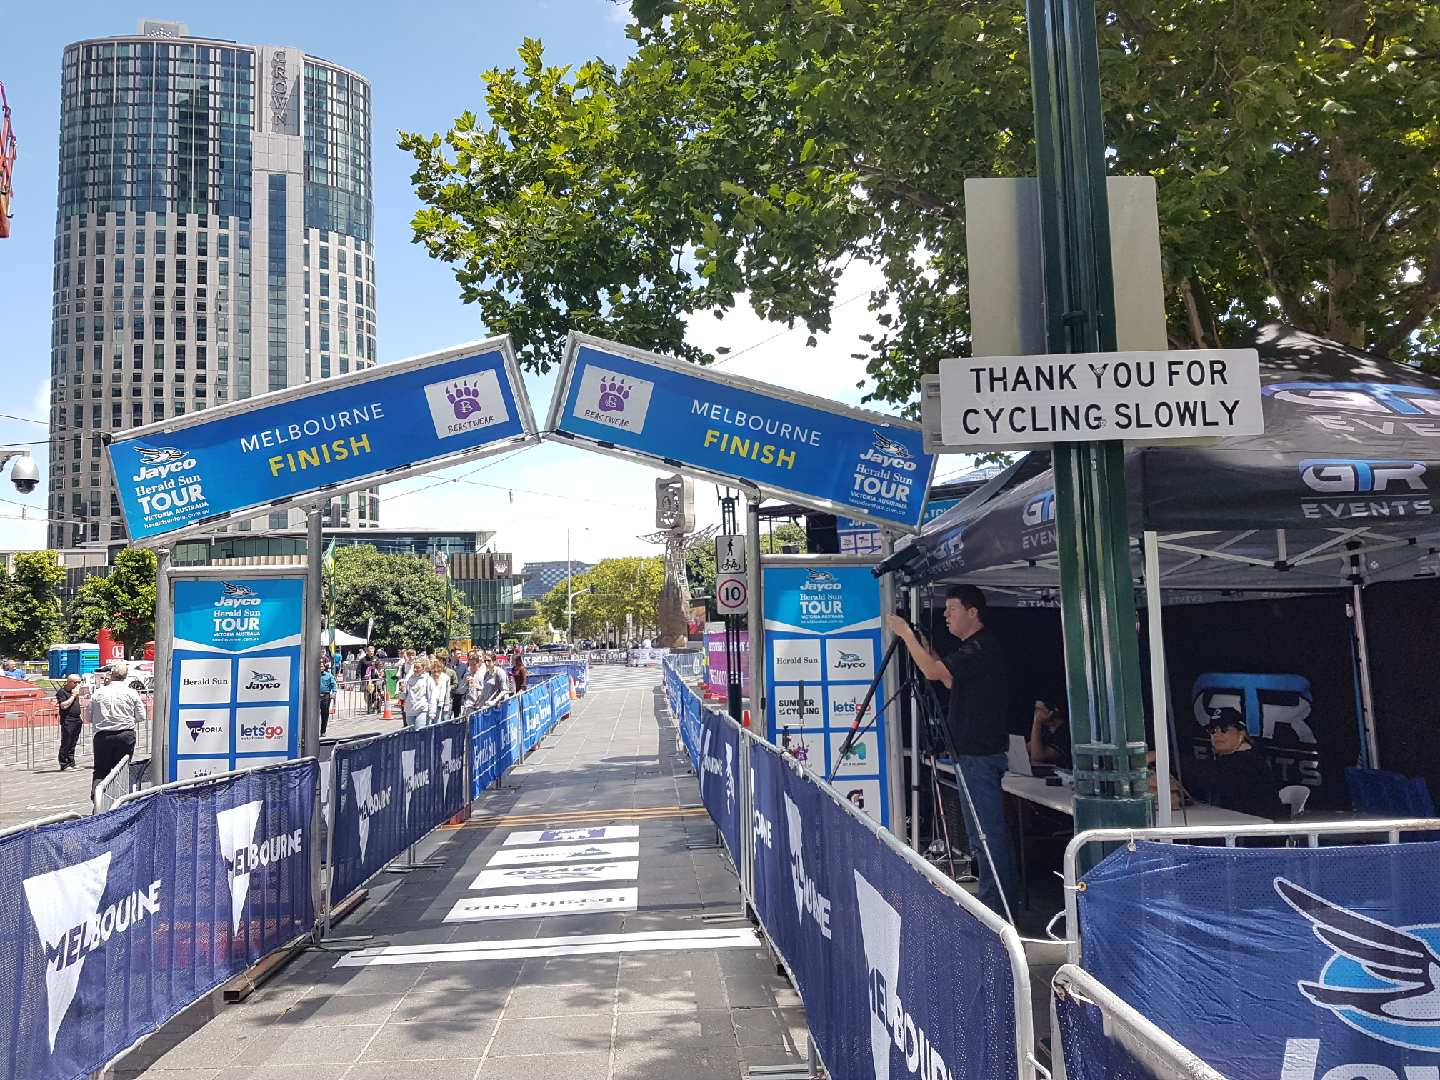 Herald Sun Tour 18 - the HST prologue finish line with a real time ' thank you for cycling slowly' sign